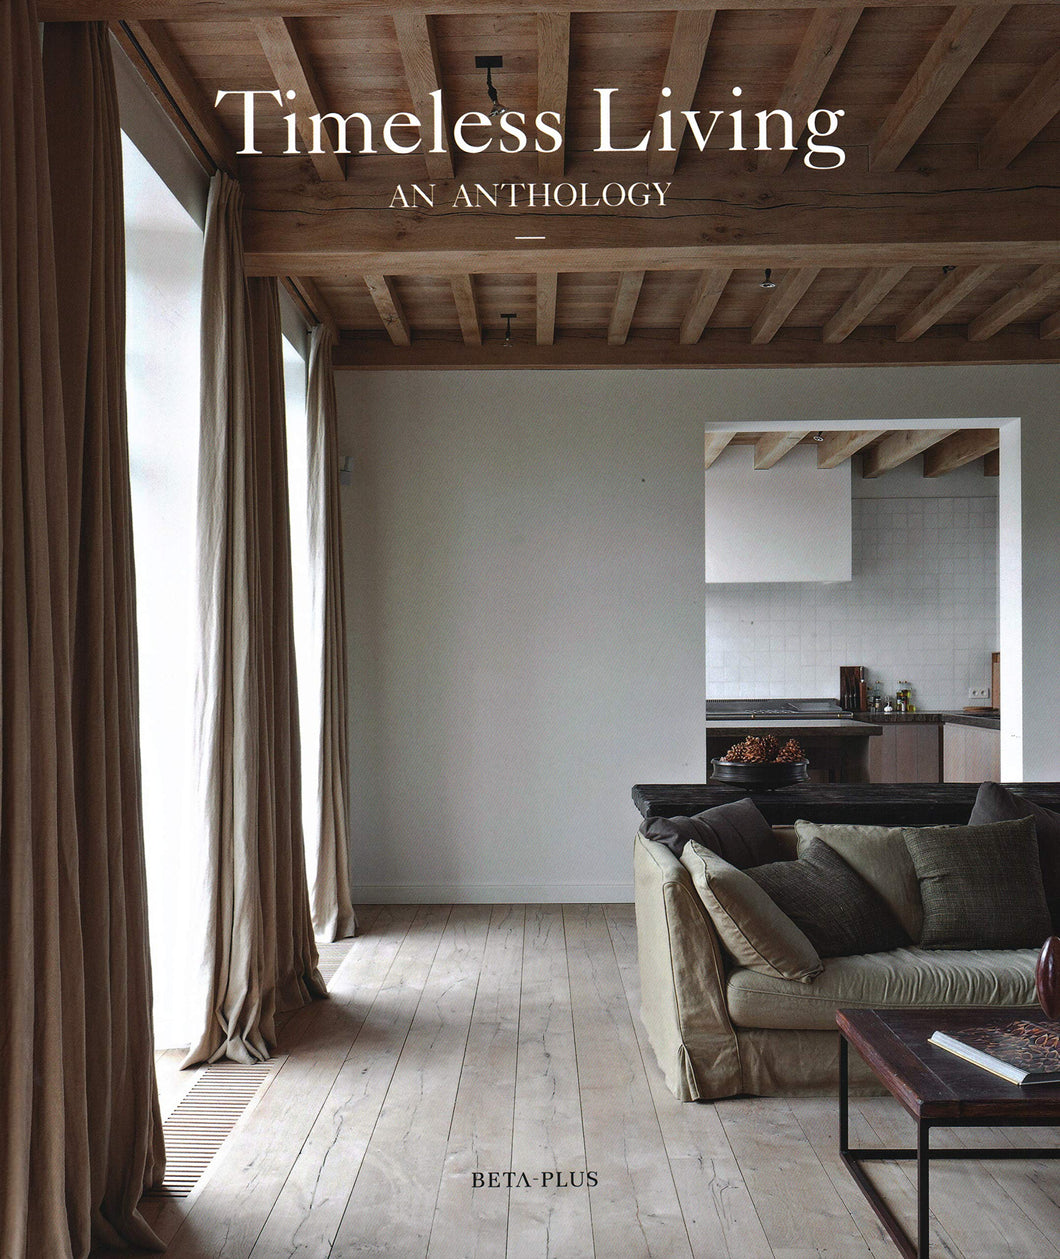 Timeless Living: An Anthology